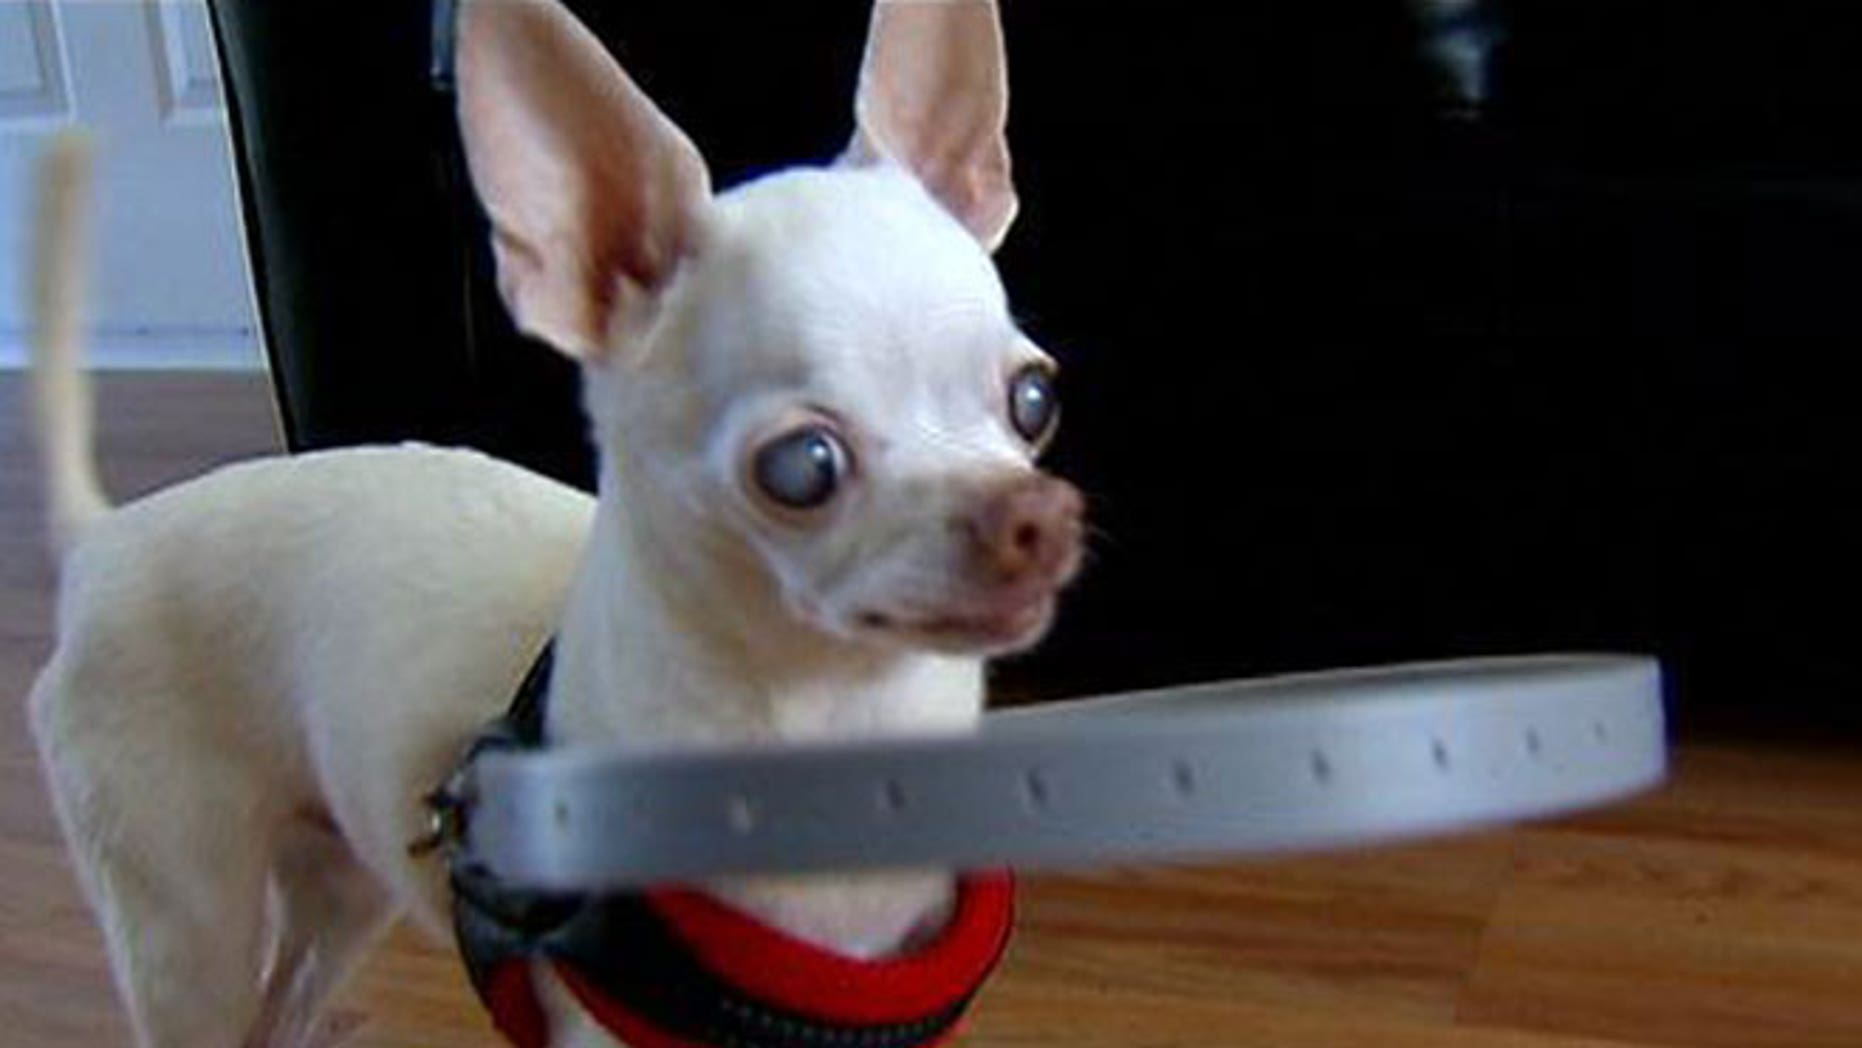 Buddy the Chihuahua, who is 13, was terrified of bumping into walls after going completely blind over the past month. To help quell the dog's fears, Jesse Foy, owner Jordan Berg's fiancé, created a handmade device to help detect objects before they hit him.